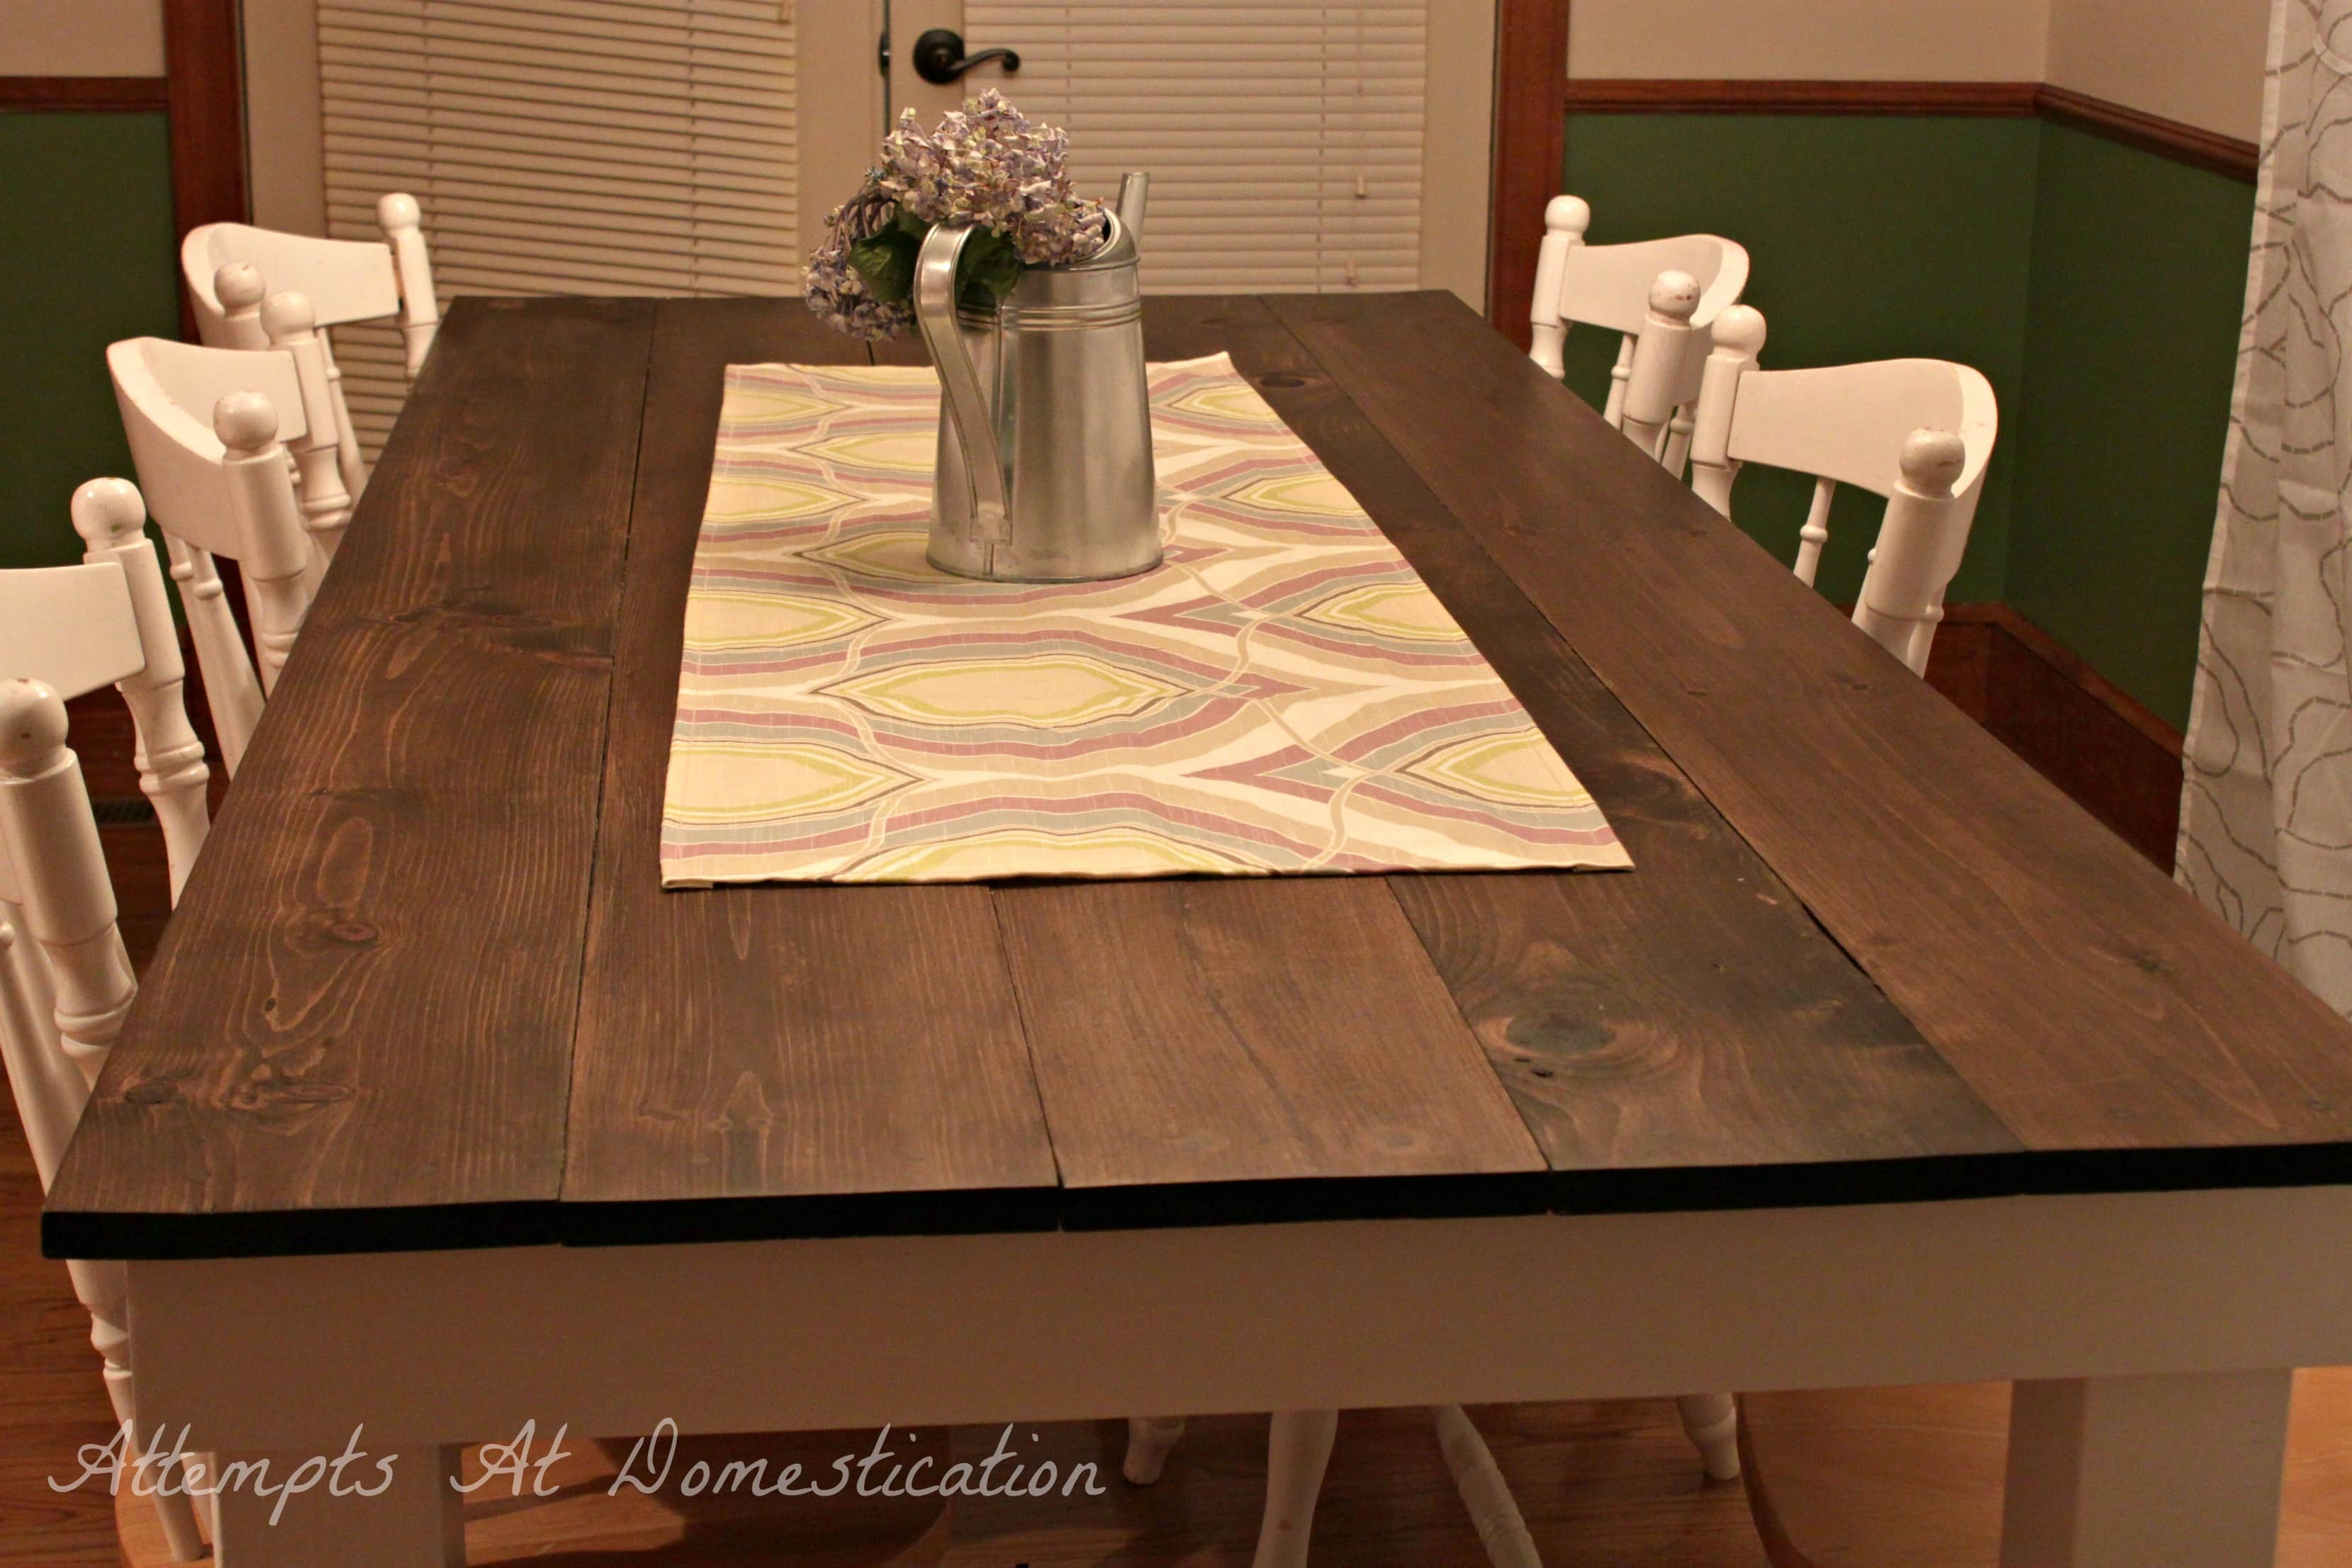 published april 15 2013 at 3318 2212 in dining room table runner